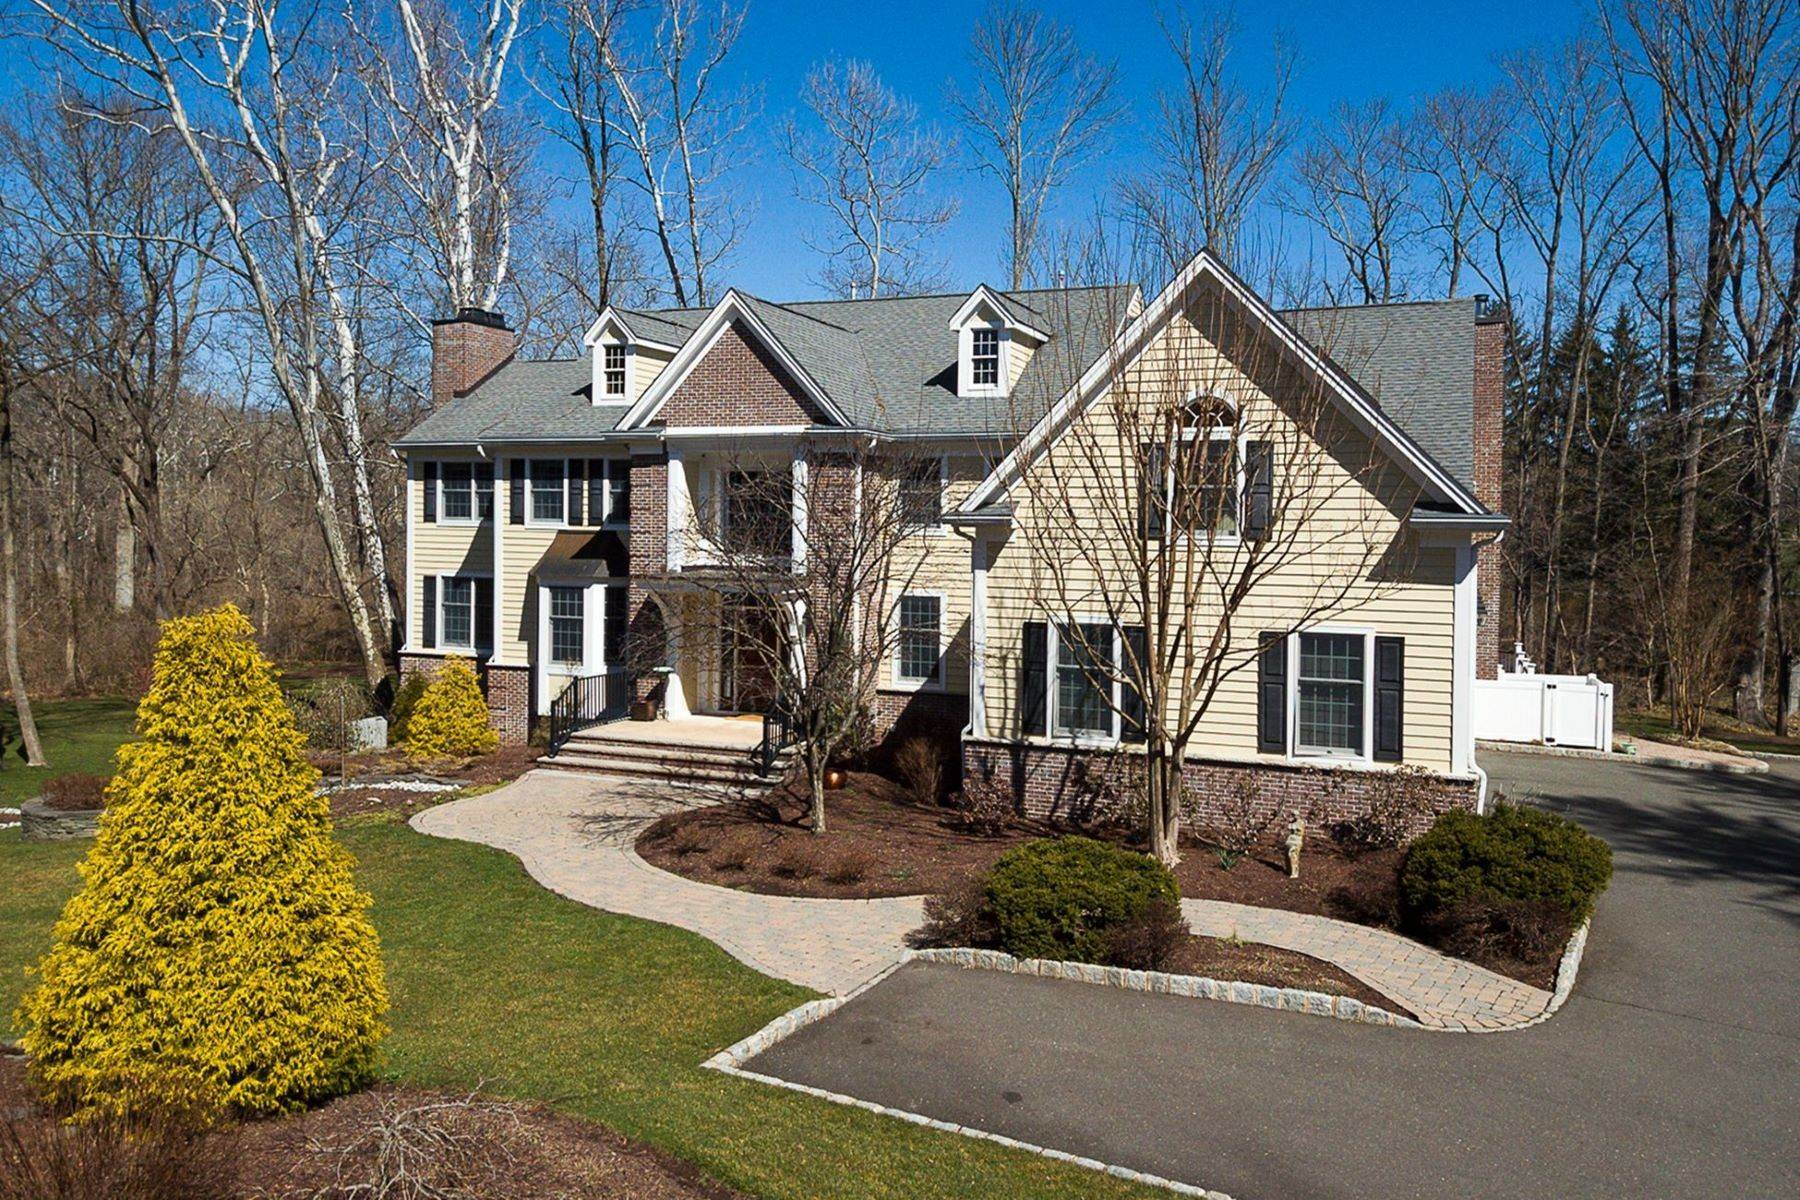 Single Family Homes for Sale at Grand Colonial in Sought-After Edgerstoune 317 Edgerstoune Road, Princeton, New Jersey 08540 United States